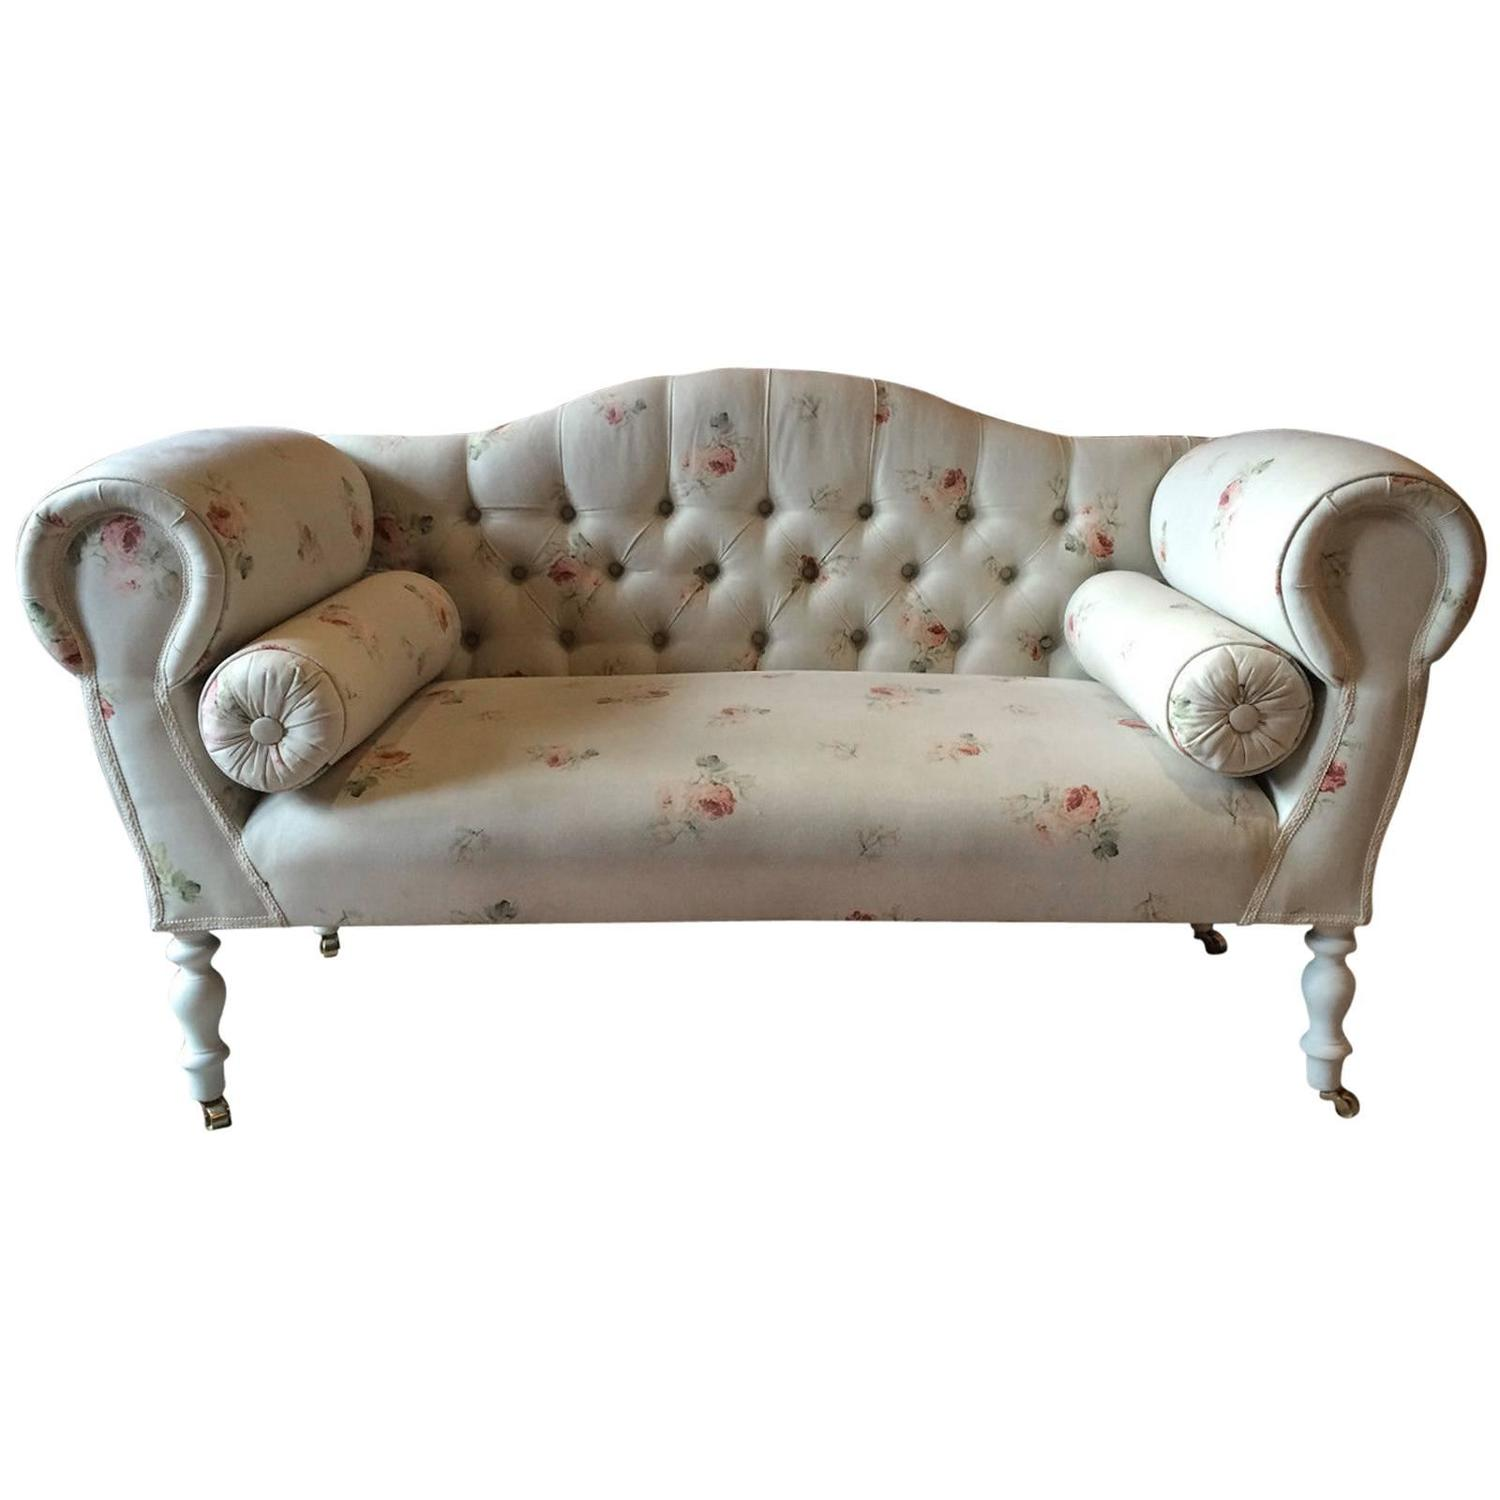 Ordinaire Stunning Laura Ashley Sofa Shabby Chic Button Back Settee Antique Style  Two Seat At 1stdibs